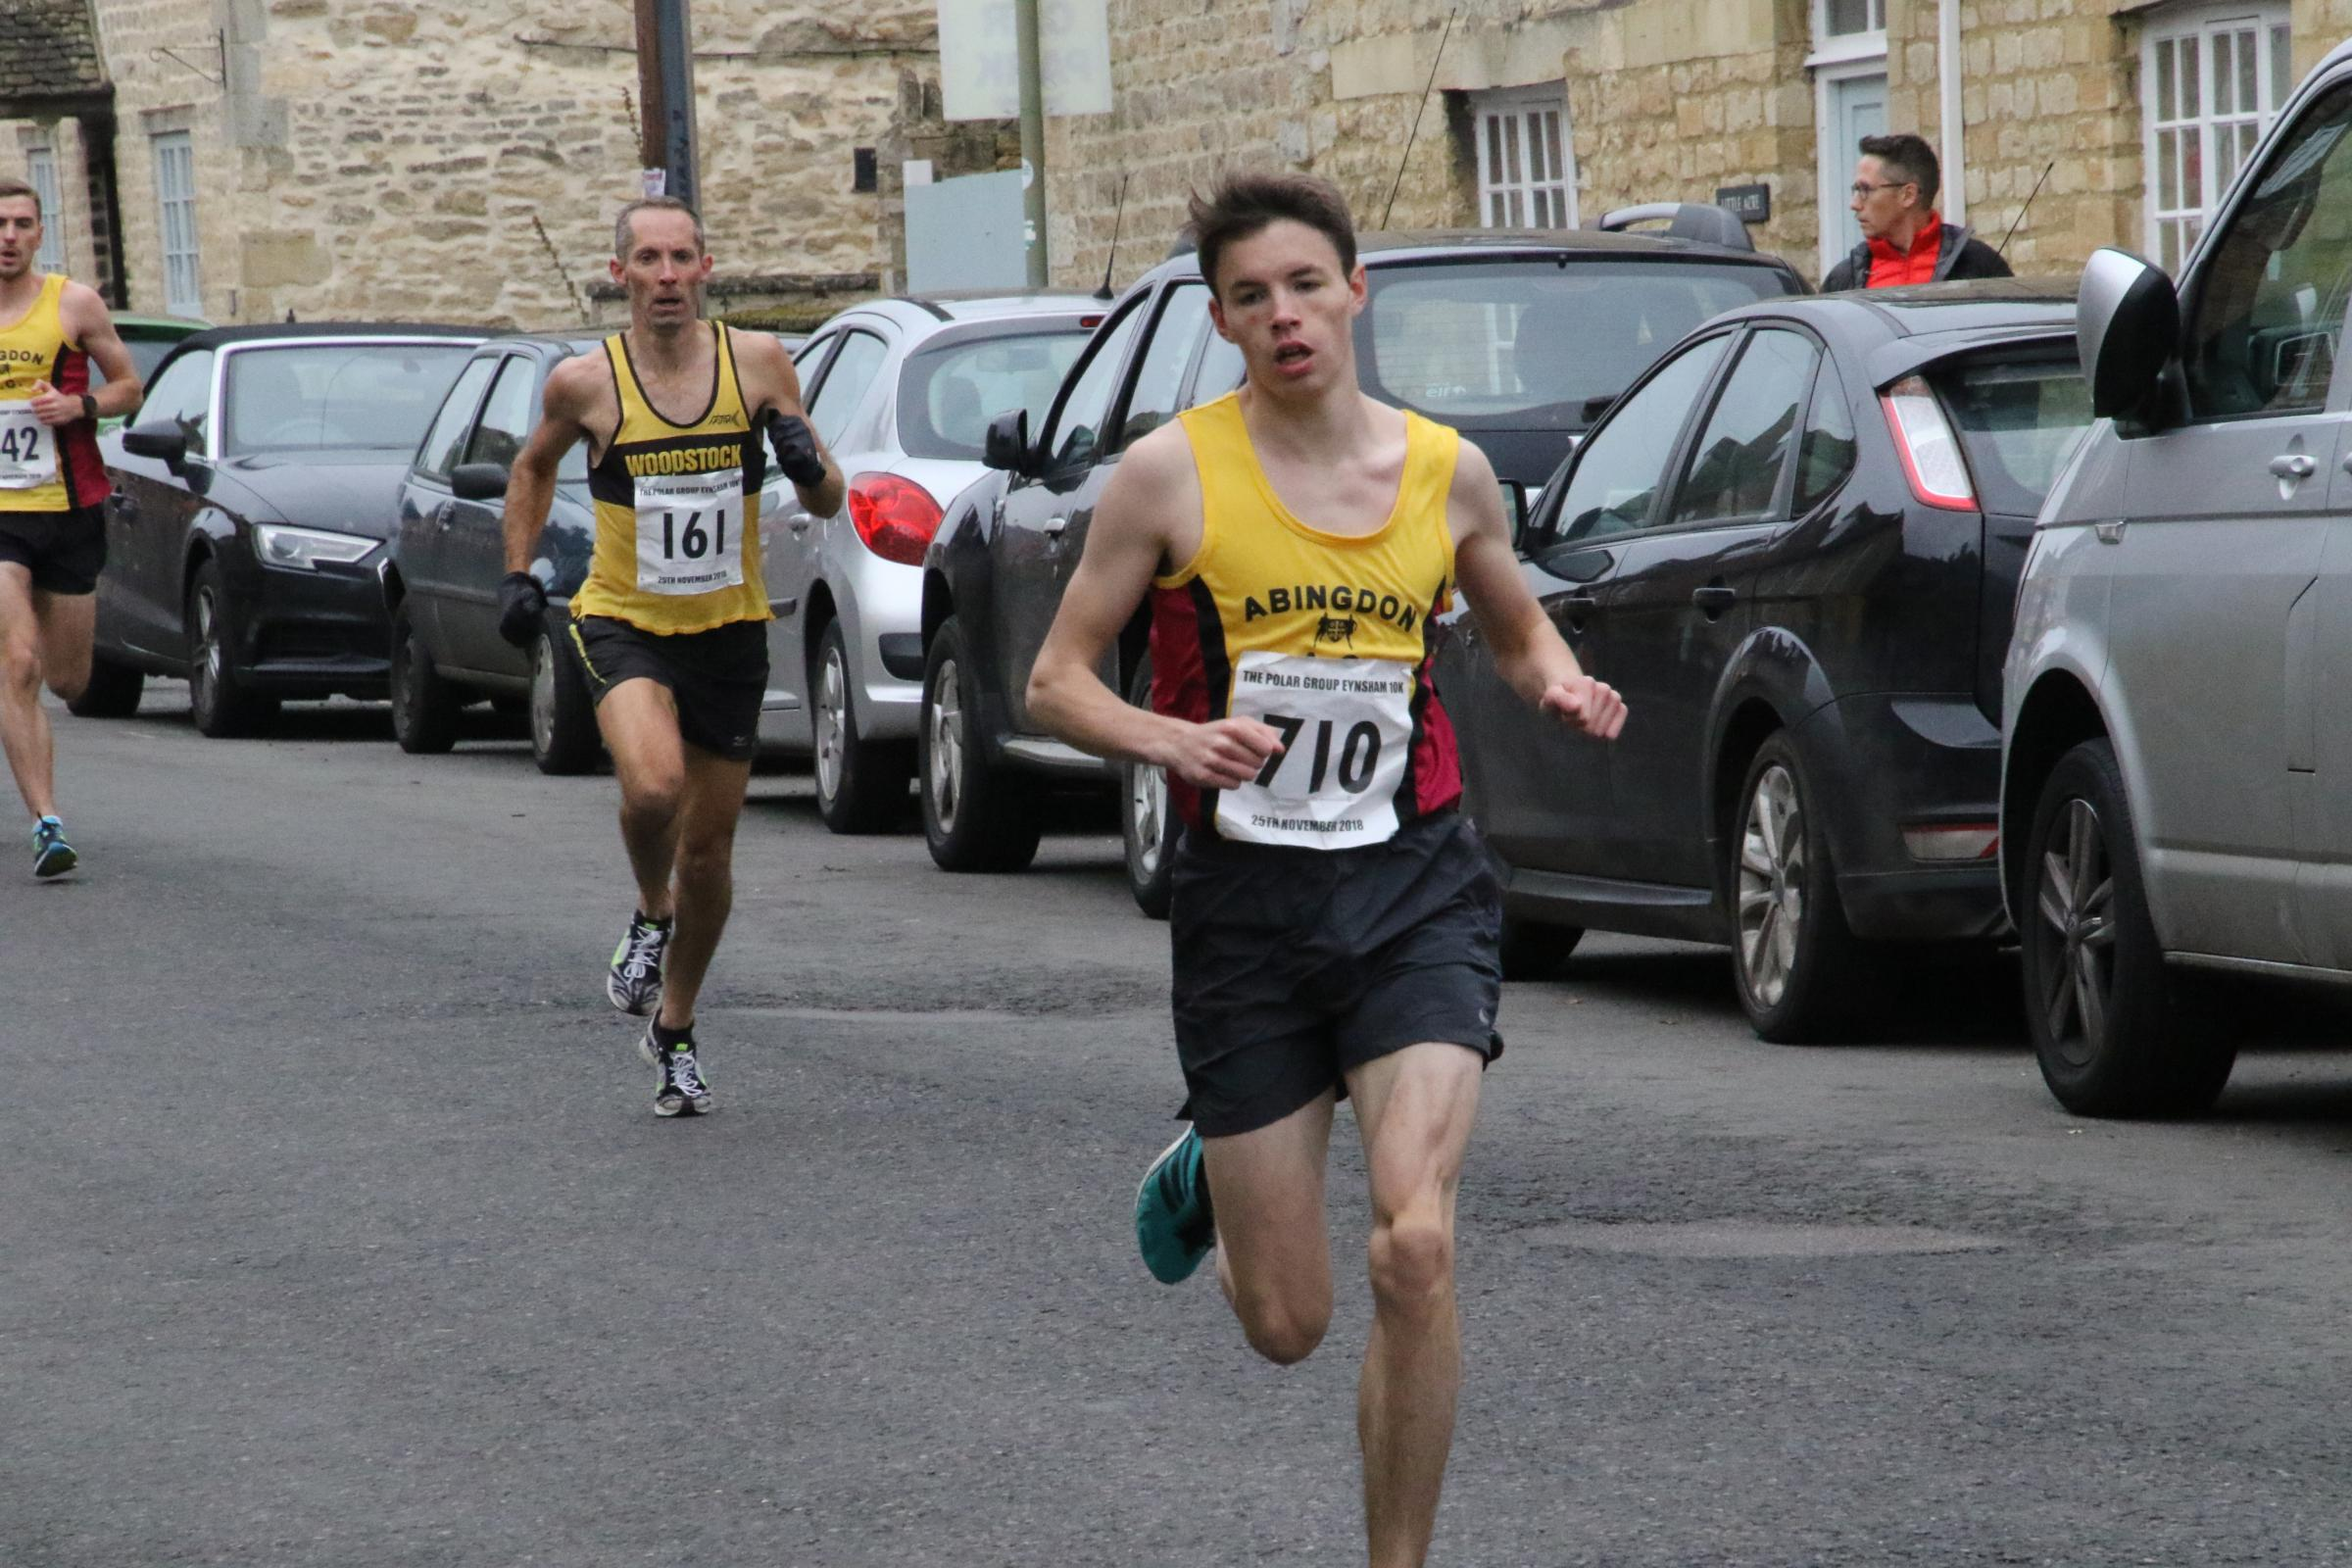 Calum Steer in action at the Eynsham 10k Picture: Barry Cornelius